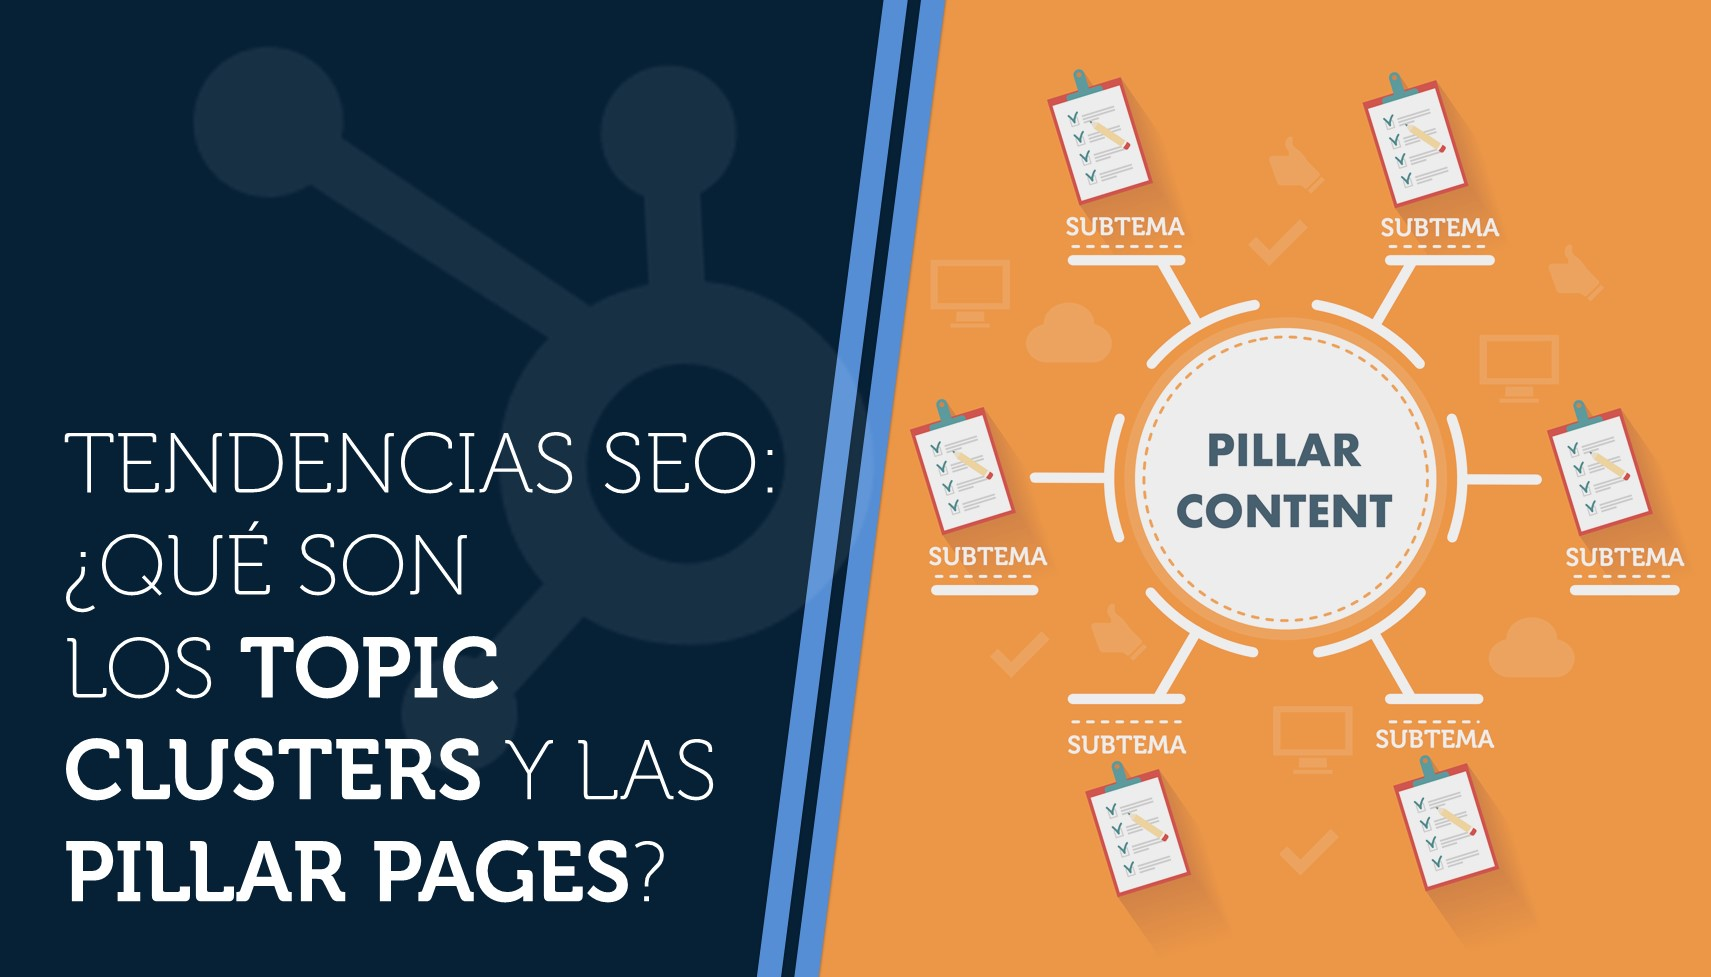 Tendencias SEO, ¿qué son los topic clusters y las pillar pages?